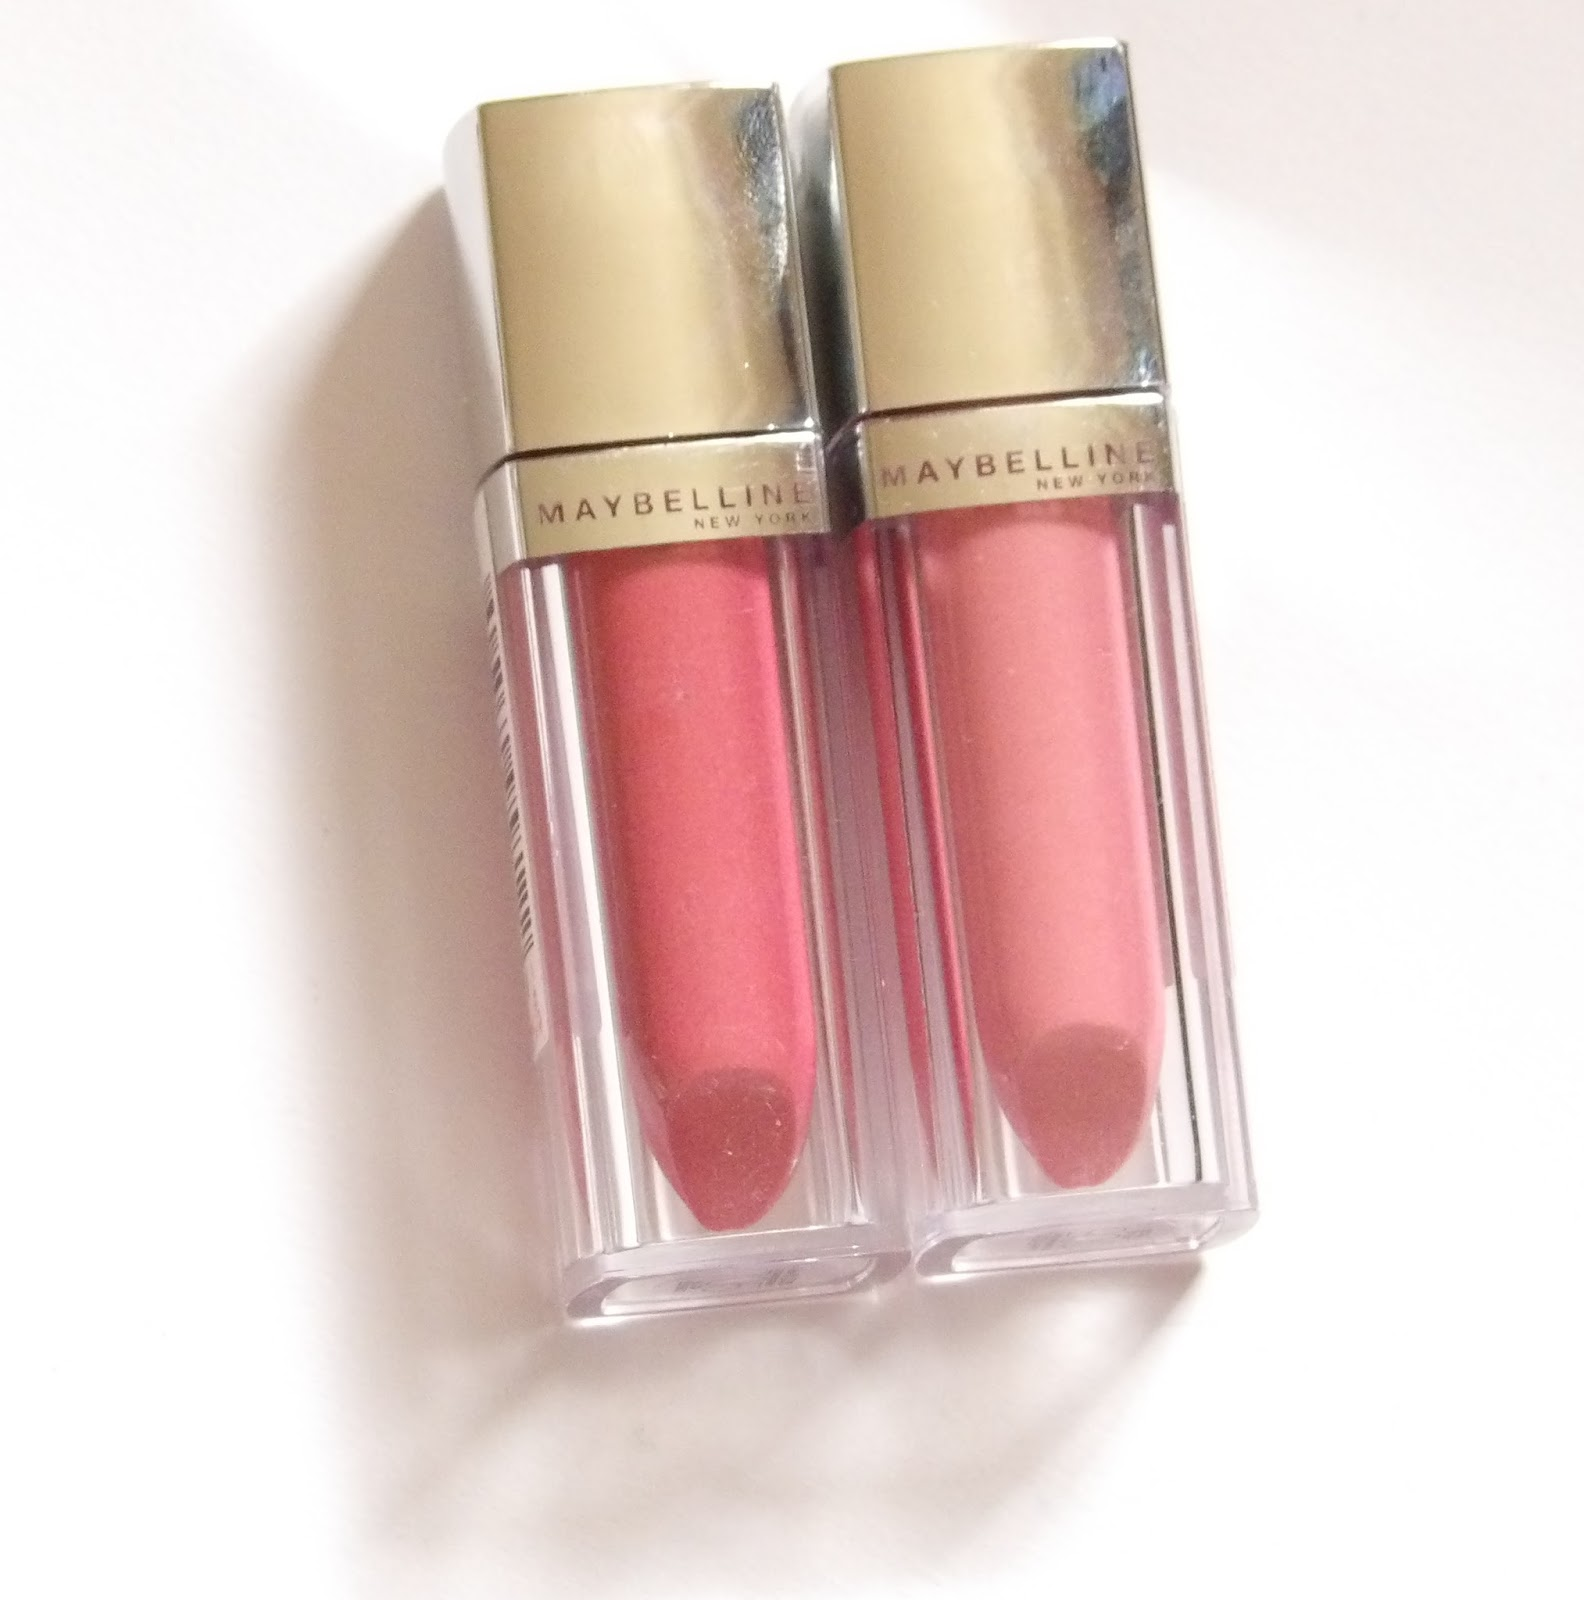 MAYBELLINE COLOUR ELIXIR IN PETAL PUSH & BLUSH ESSENCE